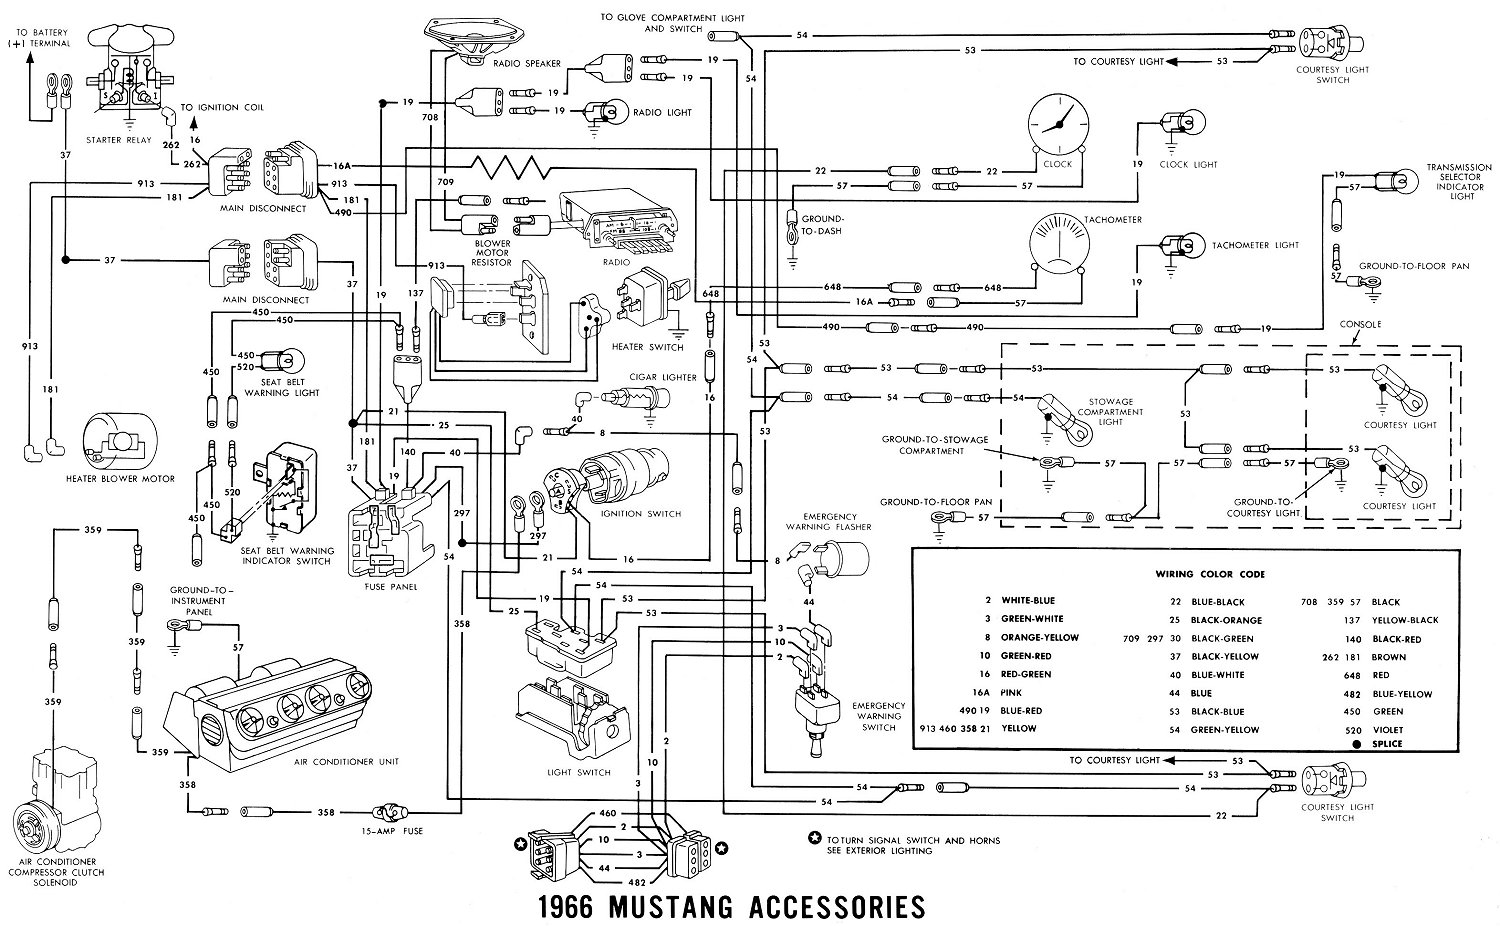 66acces1 mustang wiring diagrams mustang engine diagram \u2022 free wiring mach 460 wiring diagram at cos-gaming.co